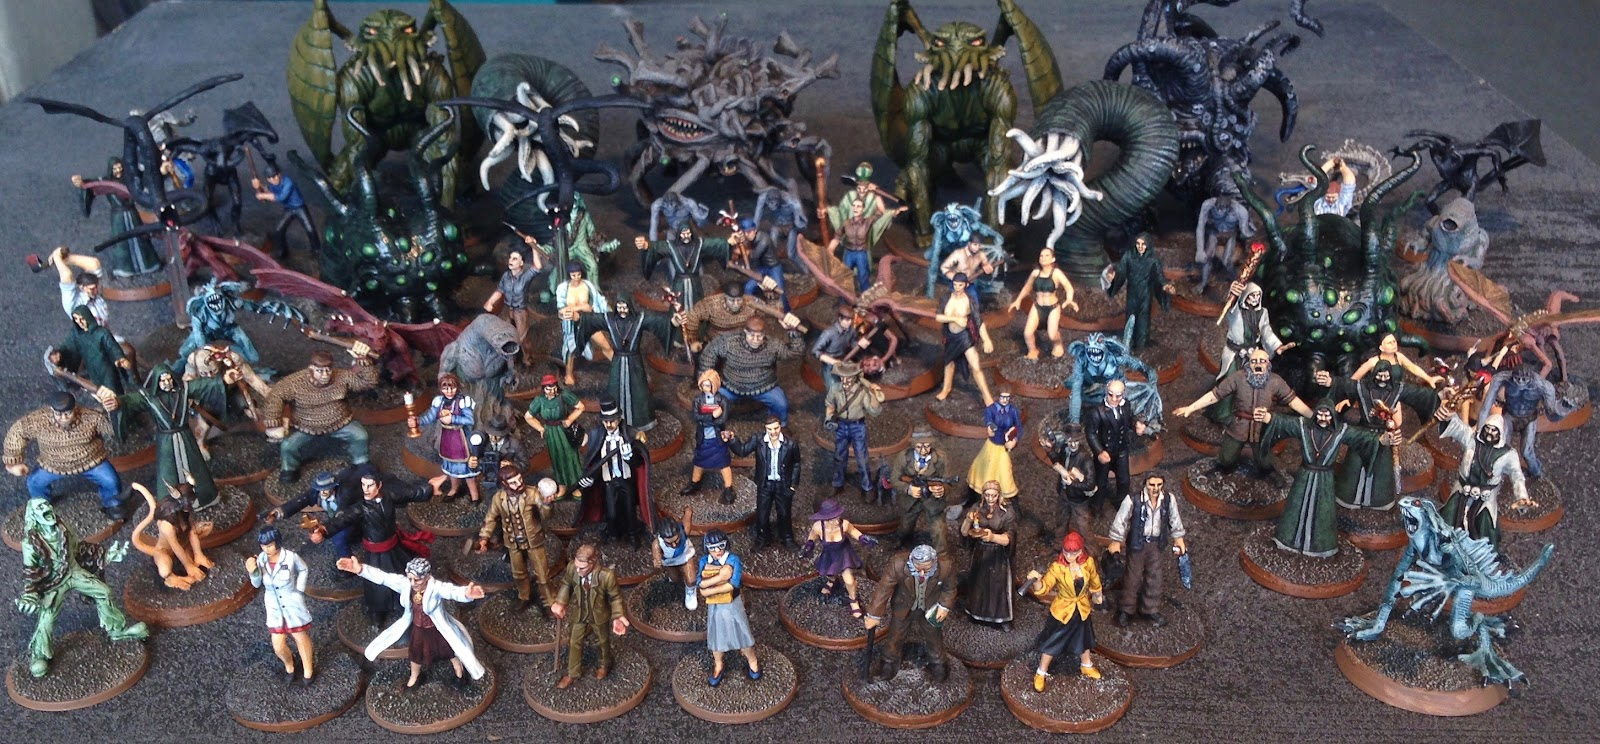 Wargaming with Barks Mansions of Madness monsters